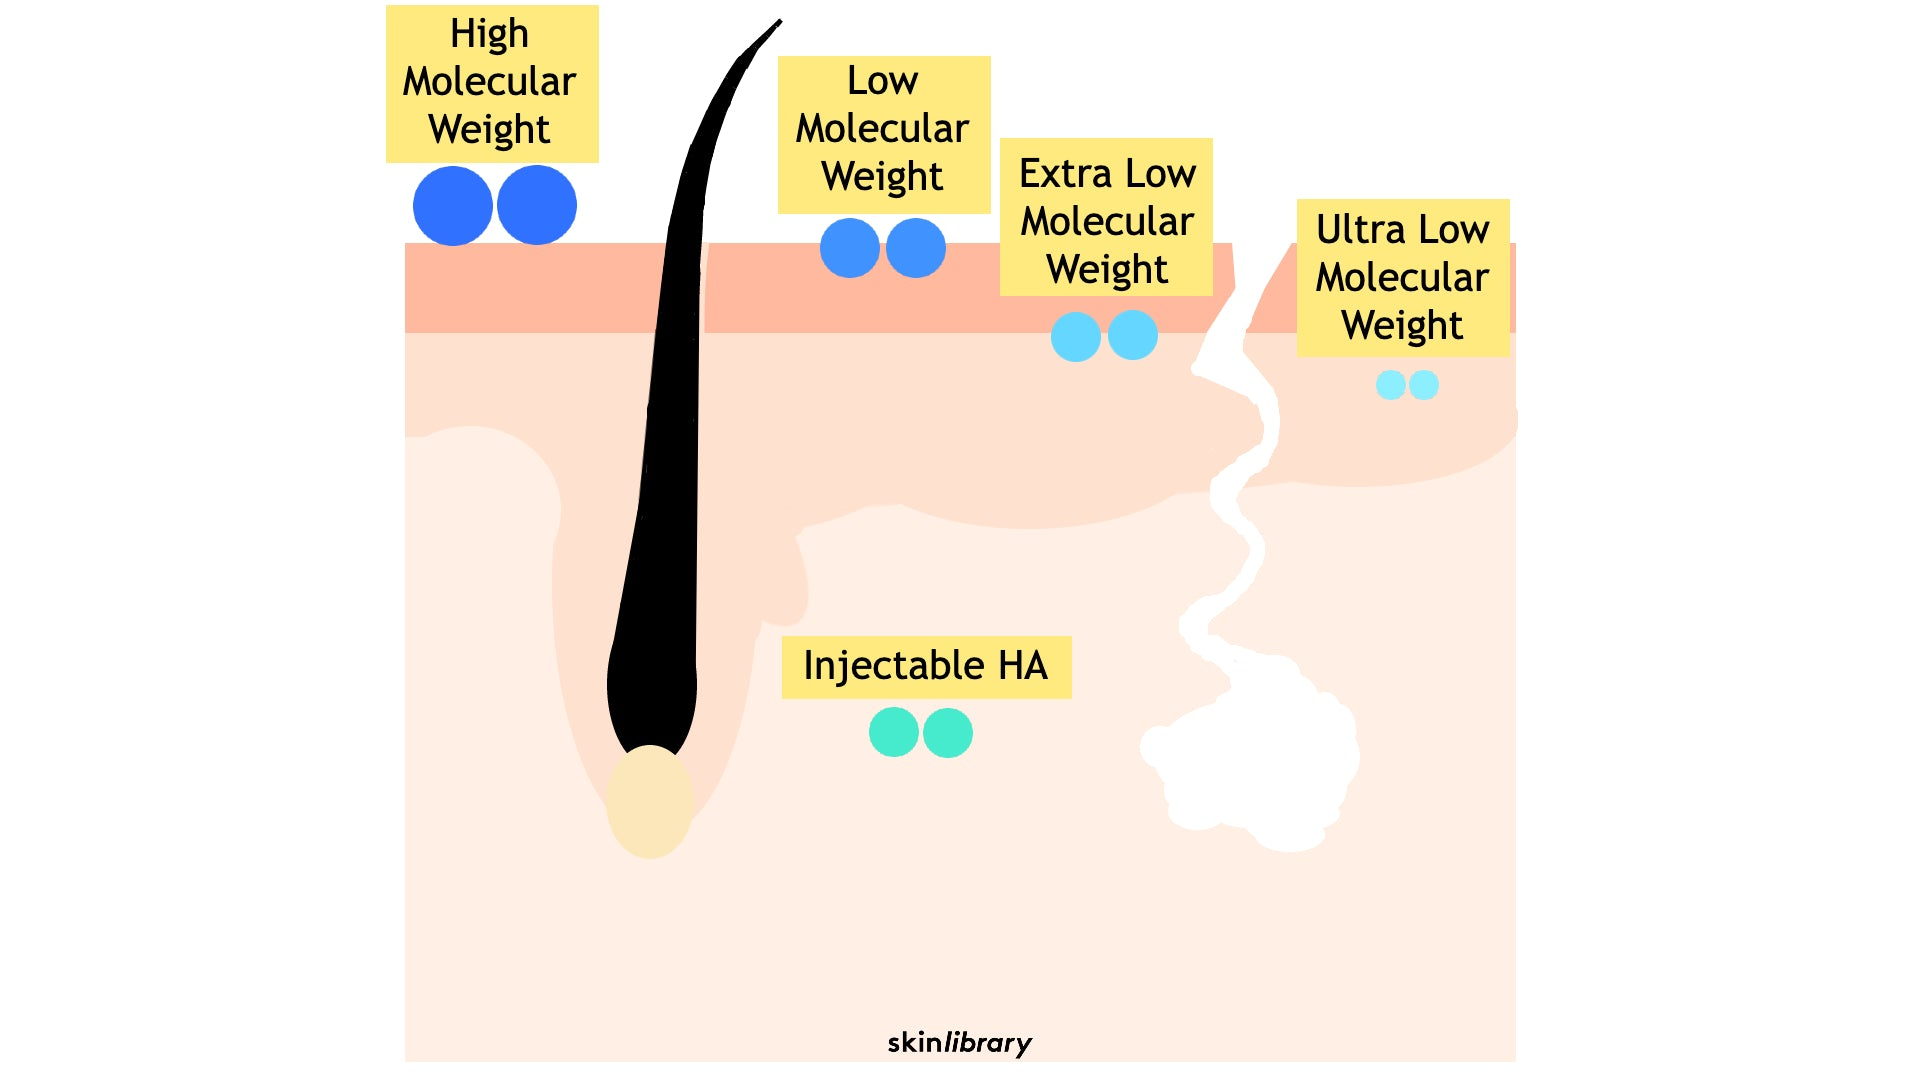 Hyaluronic Acid and molecular weight